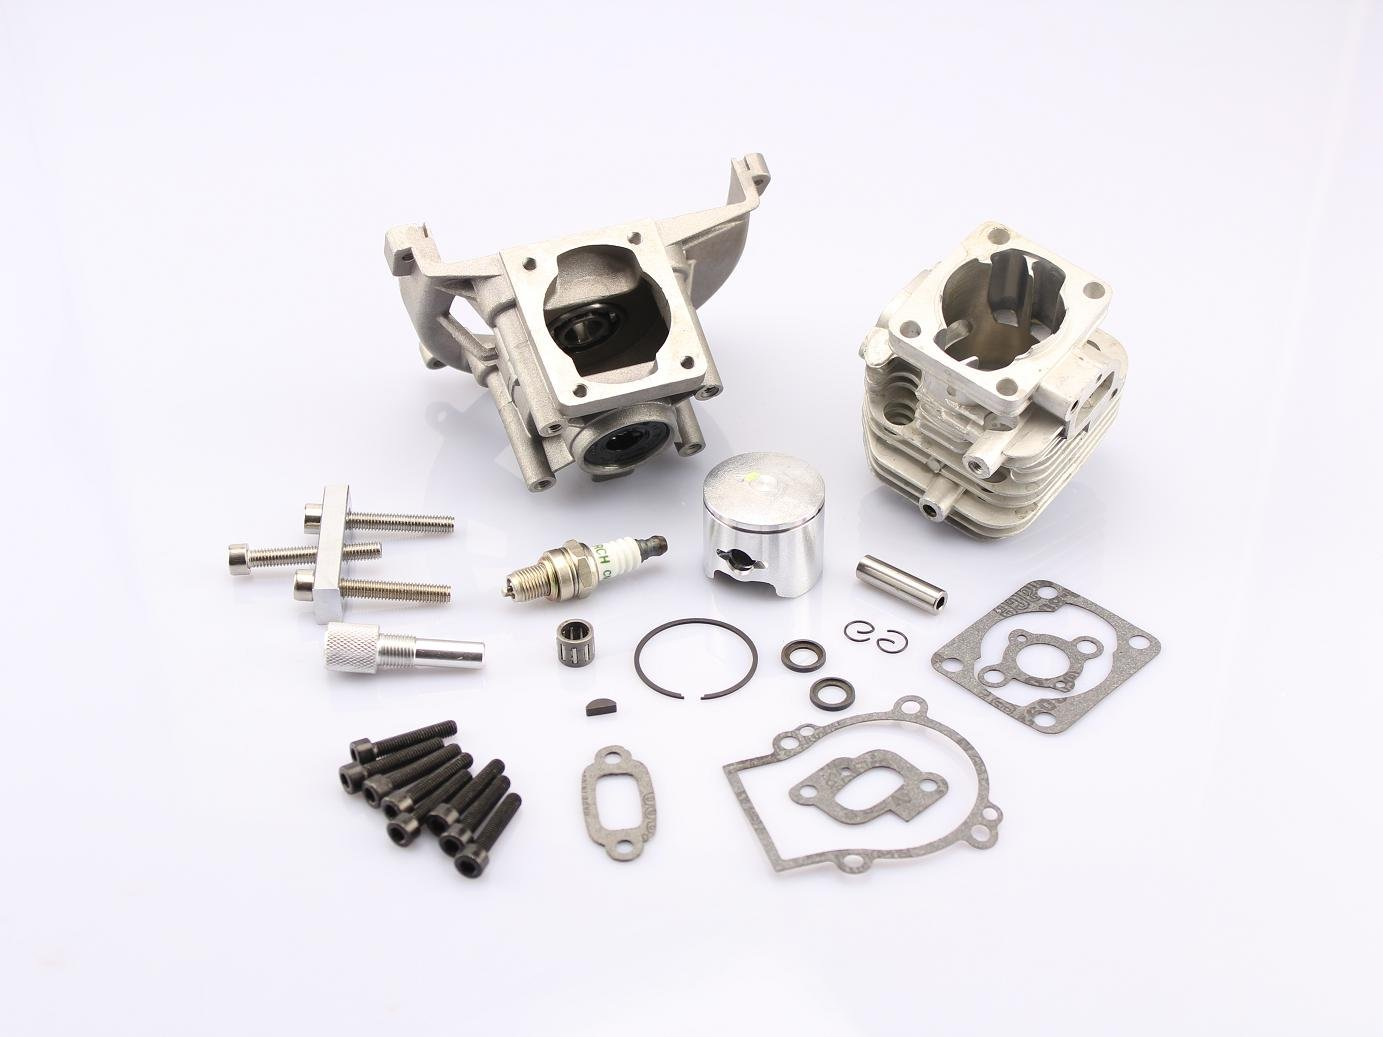 29CC four-point fixed engine parts kit for 1/5 baja HPI KM 5B 5T 5SC rc car piston kit 36mm for hpi baja km cy sikk king chung yang ddm losi rovan zenoah g290rc 29cc 1 5 1 5 r c 5b 5t 5sc rc ring pin clip